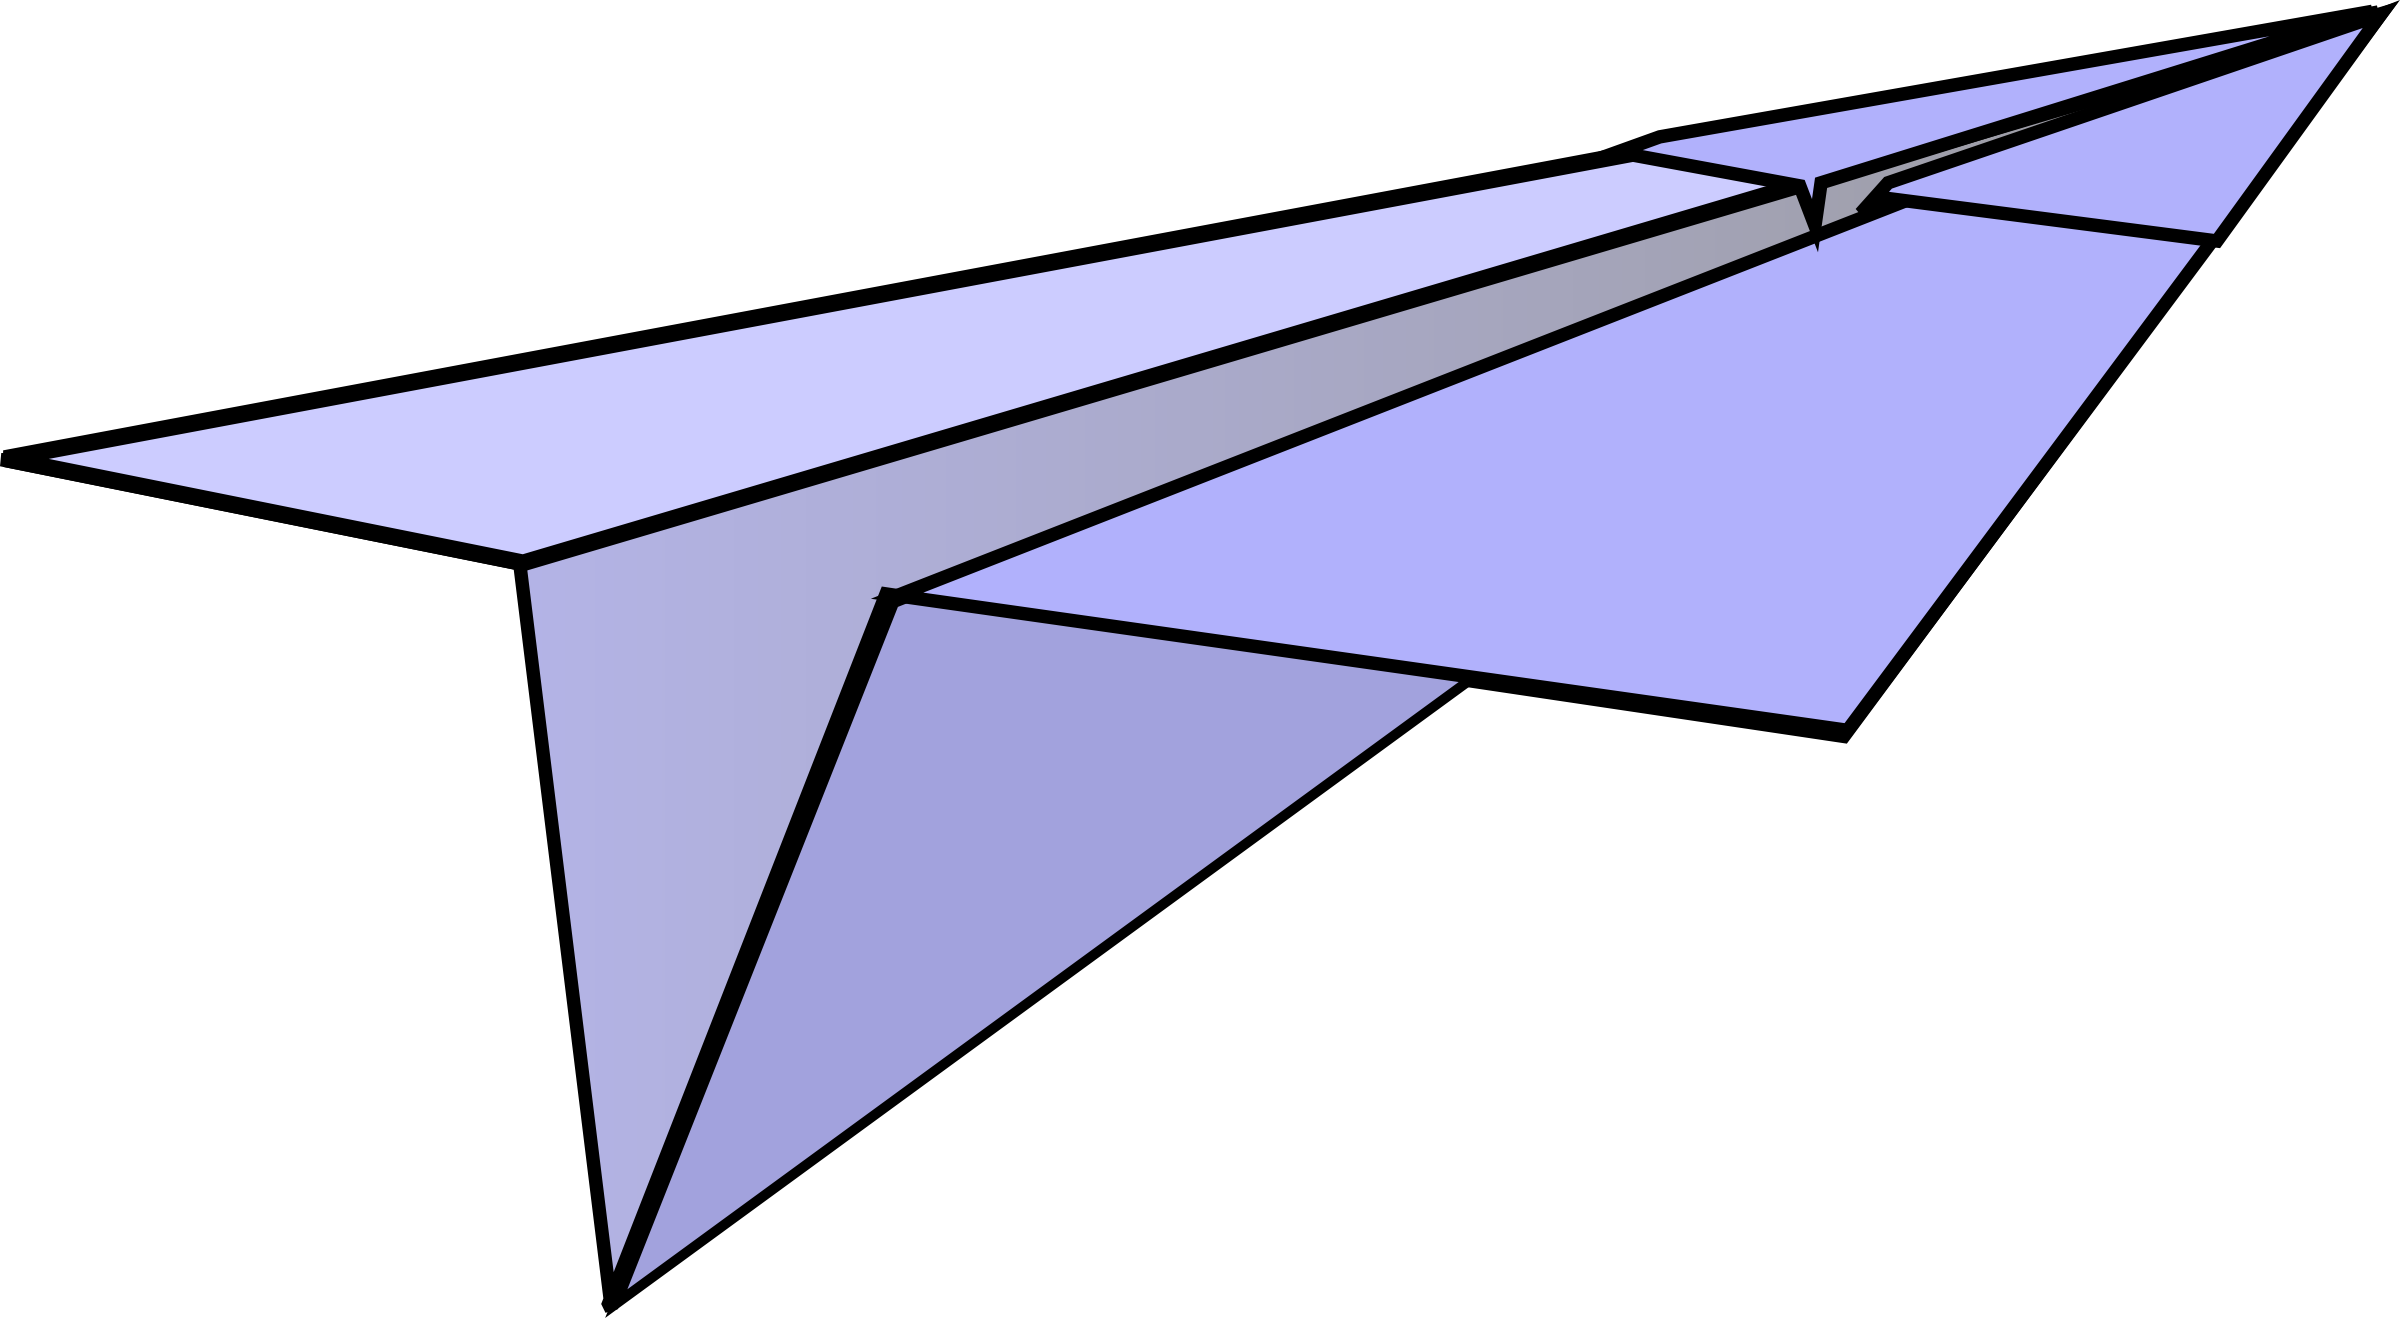 Clipart paper airplane.